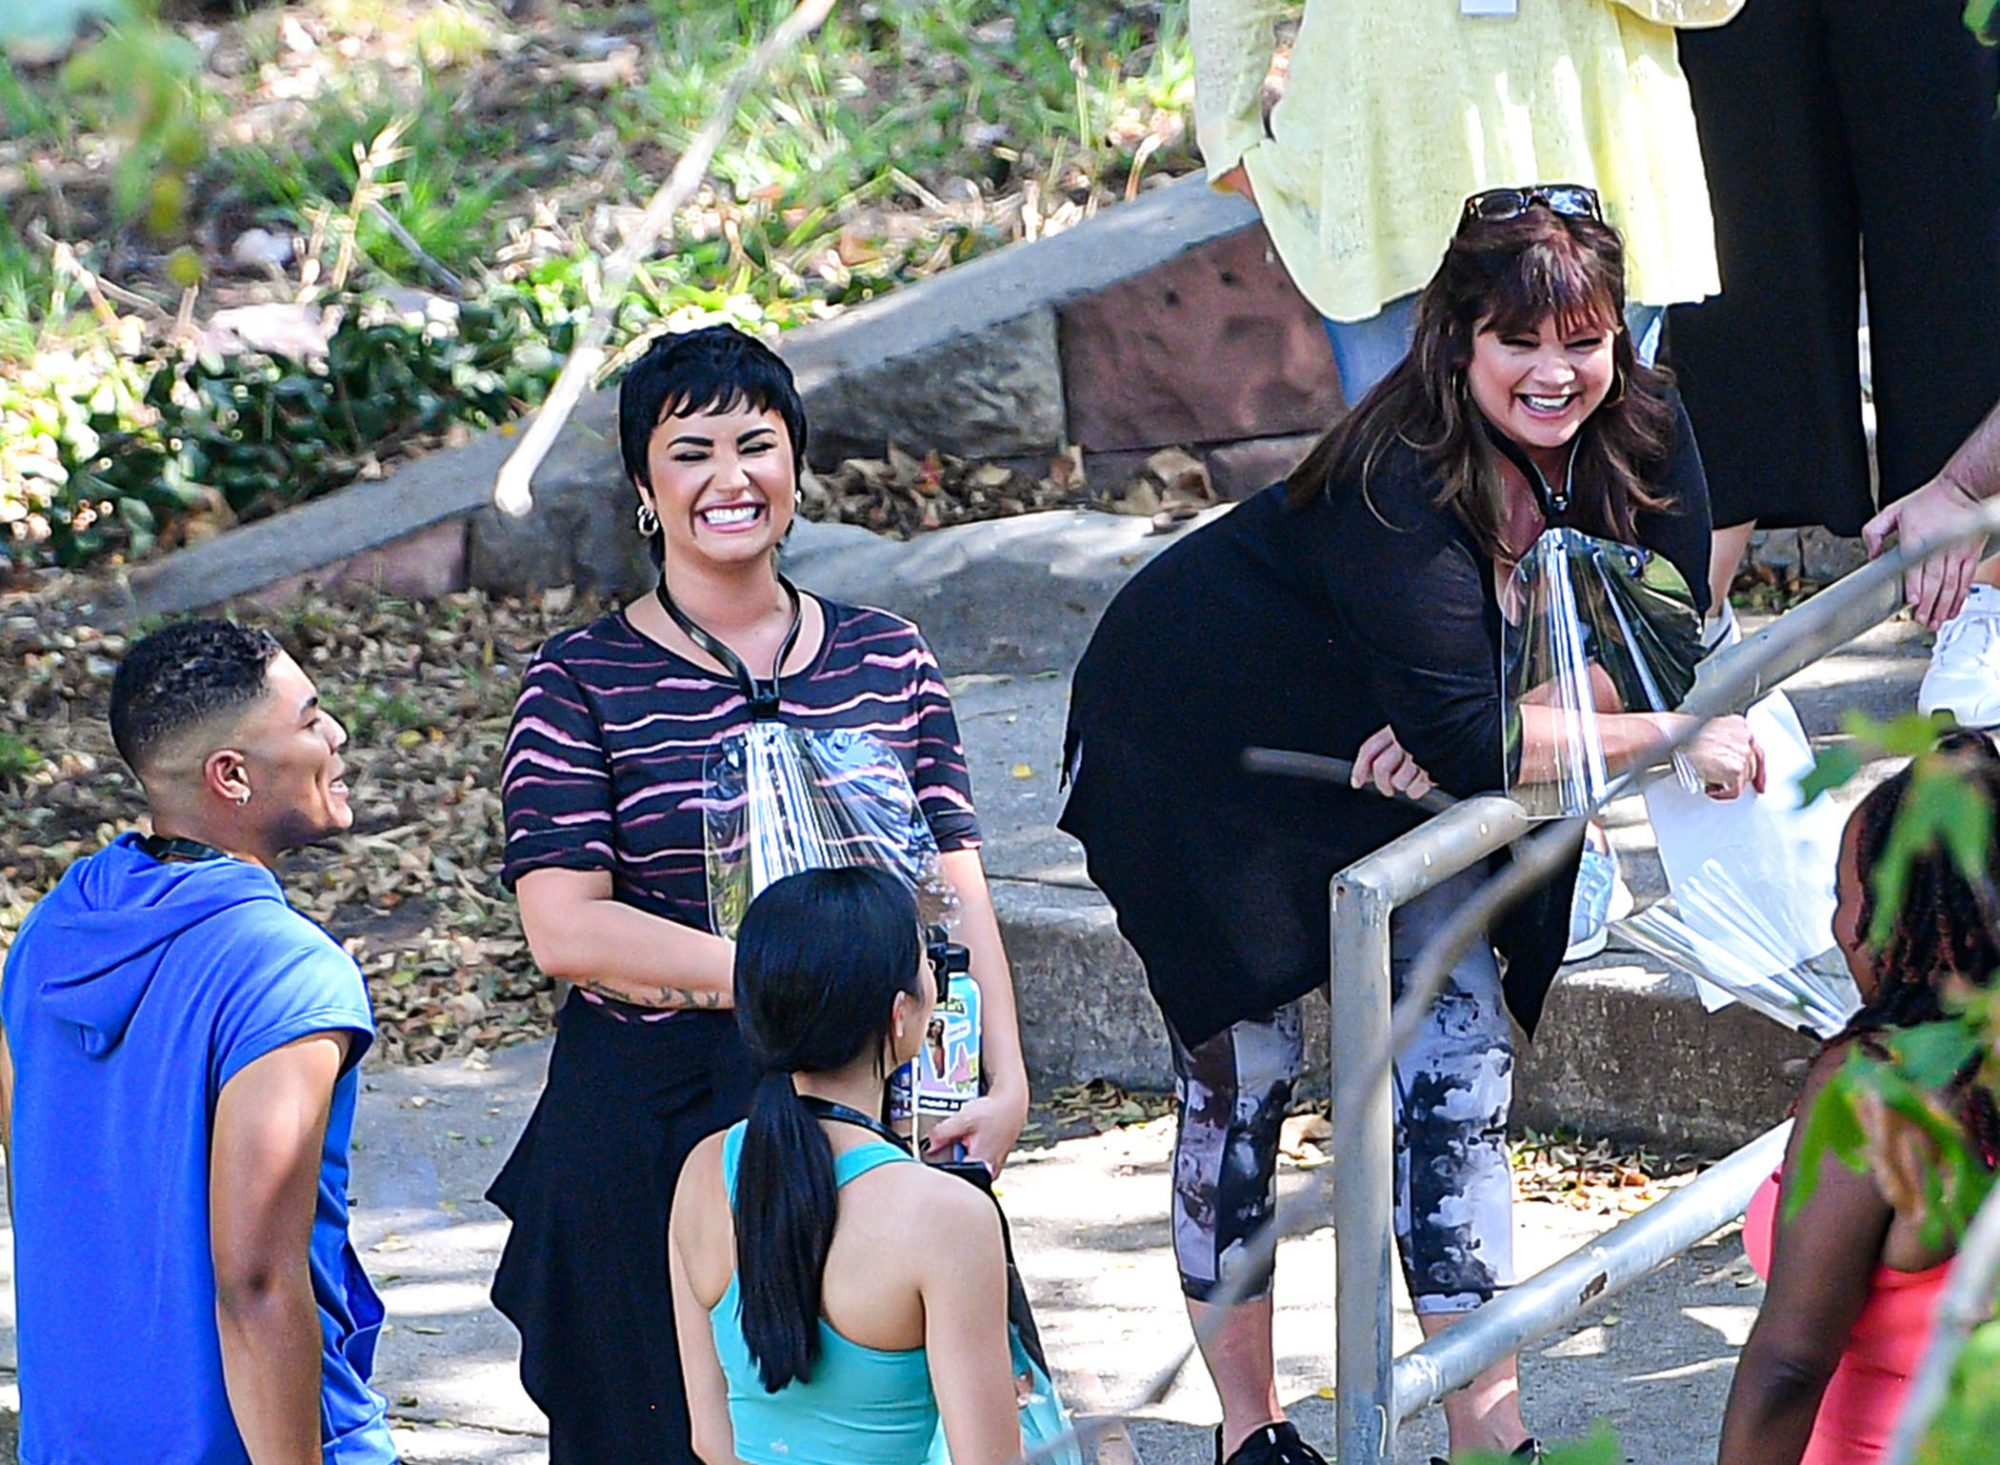 First Look! Demi Lovato And Valerie Bertinelli Have A Blast On Set Of New TV Pilot 'Hungry'